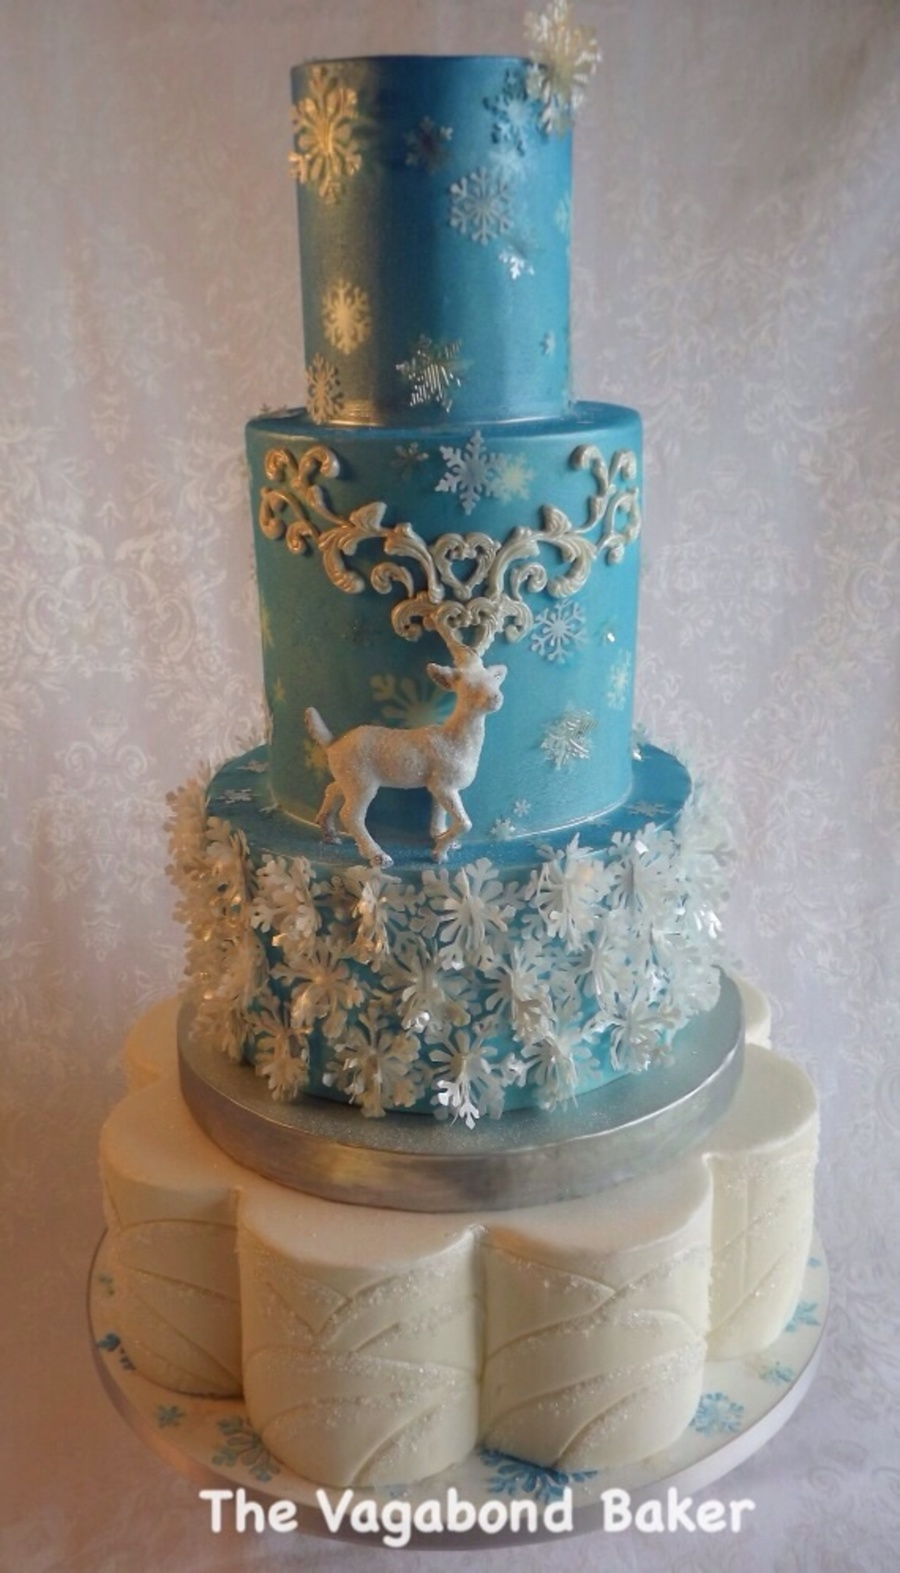 Reindeer And Snowflakes Wedding Cake The Snowflake Layer Is Is Wafer     Reindeer and Snowflakes Wedding cake  The snowflake layer is is wafer  paper  the snowflakes on the top tiers are gelatin or wafer paper